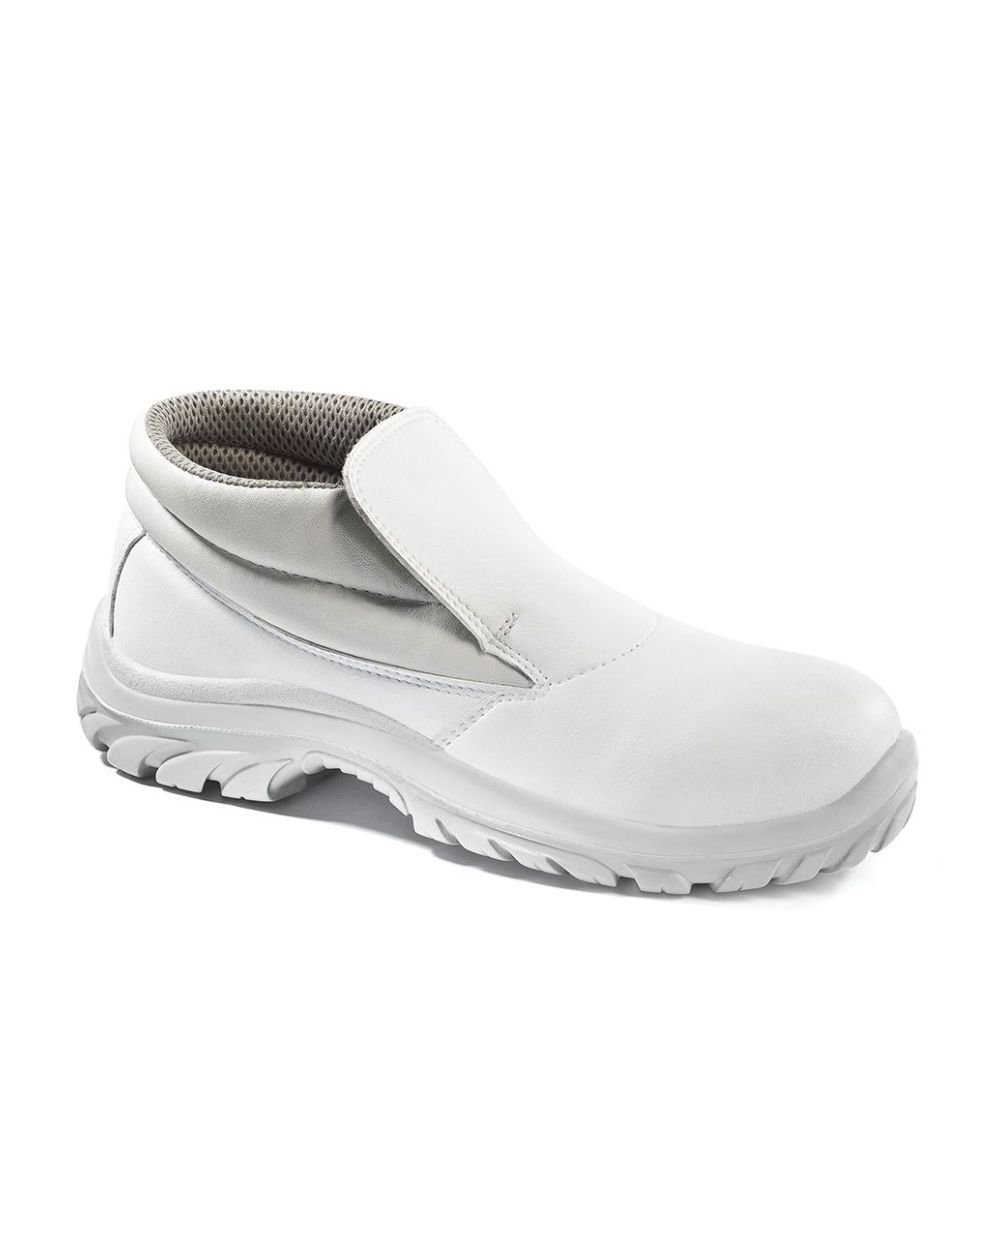 Baltix High Slip On Boot